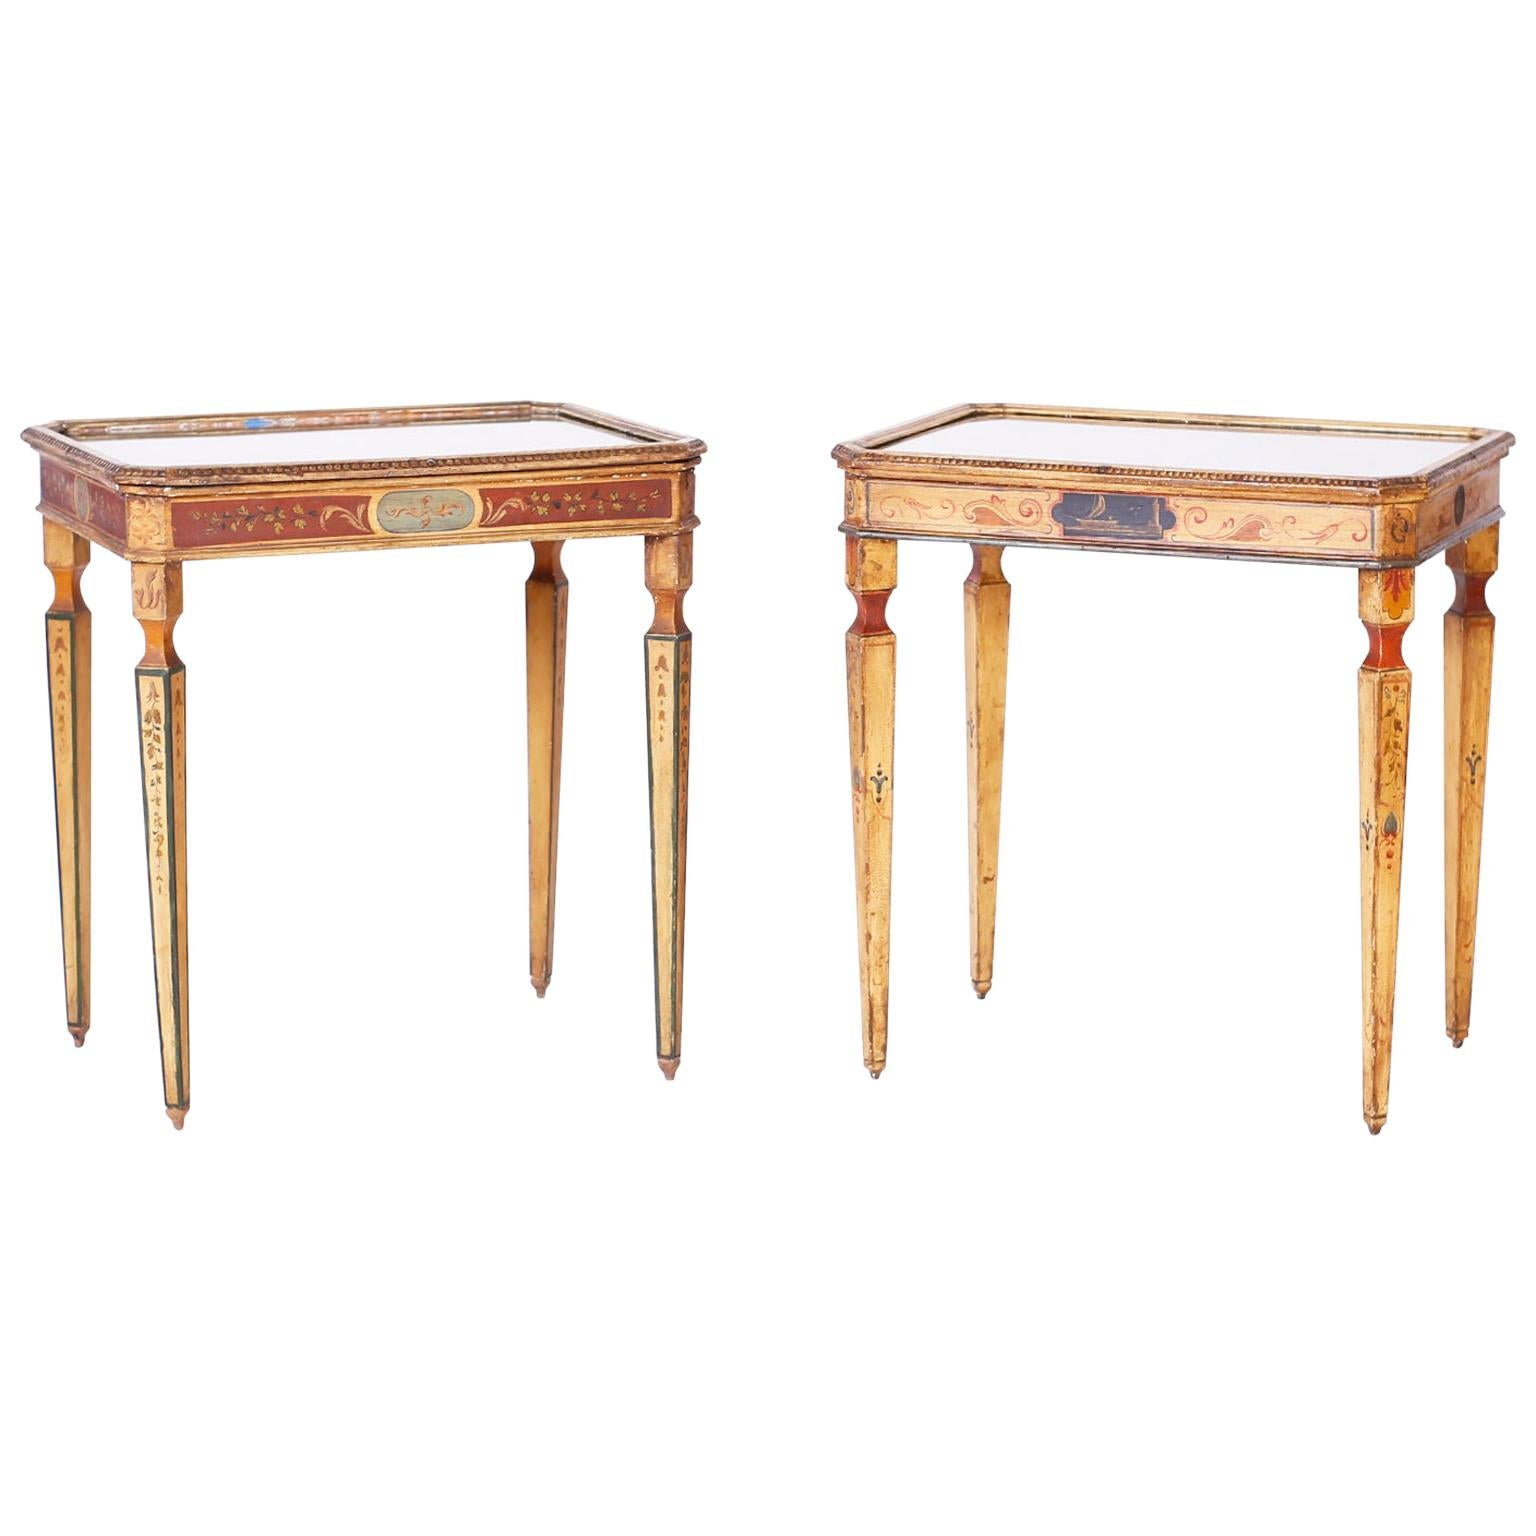 Near Pair of Venetian Painted Neoclassical Style Tables